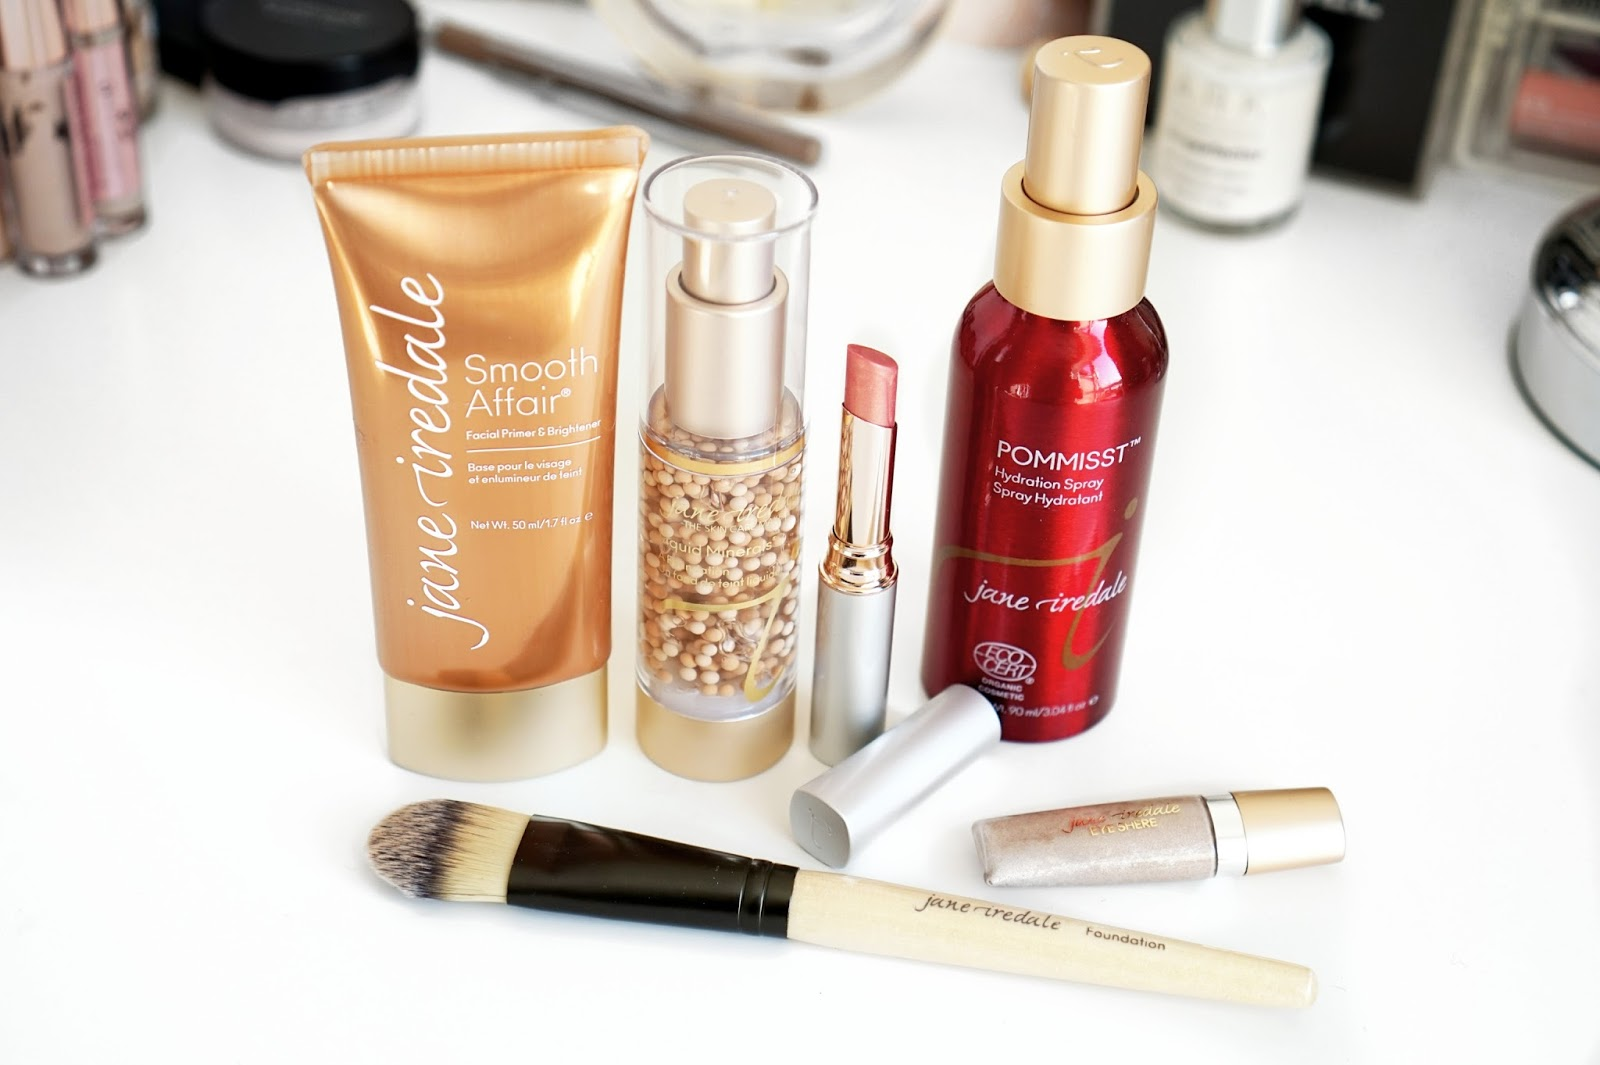 Jane_Iredale_Mineral_Makeup_Products